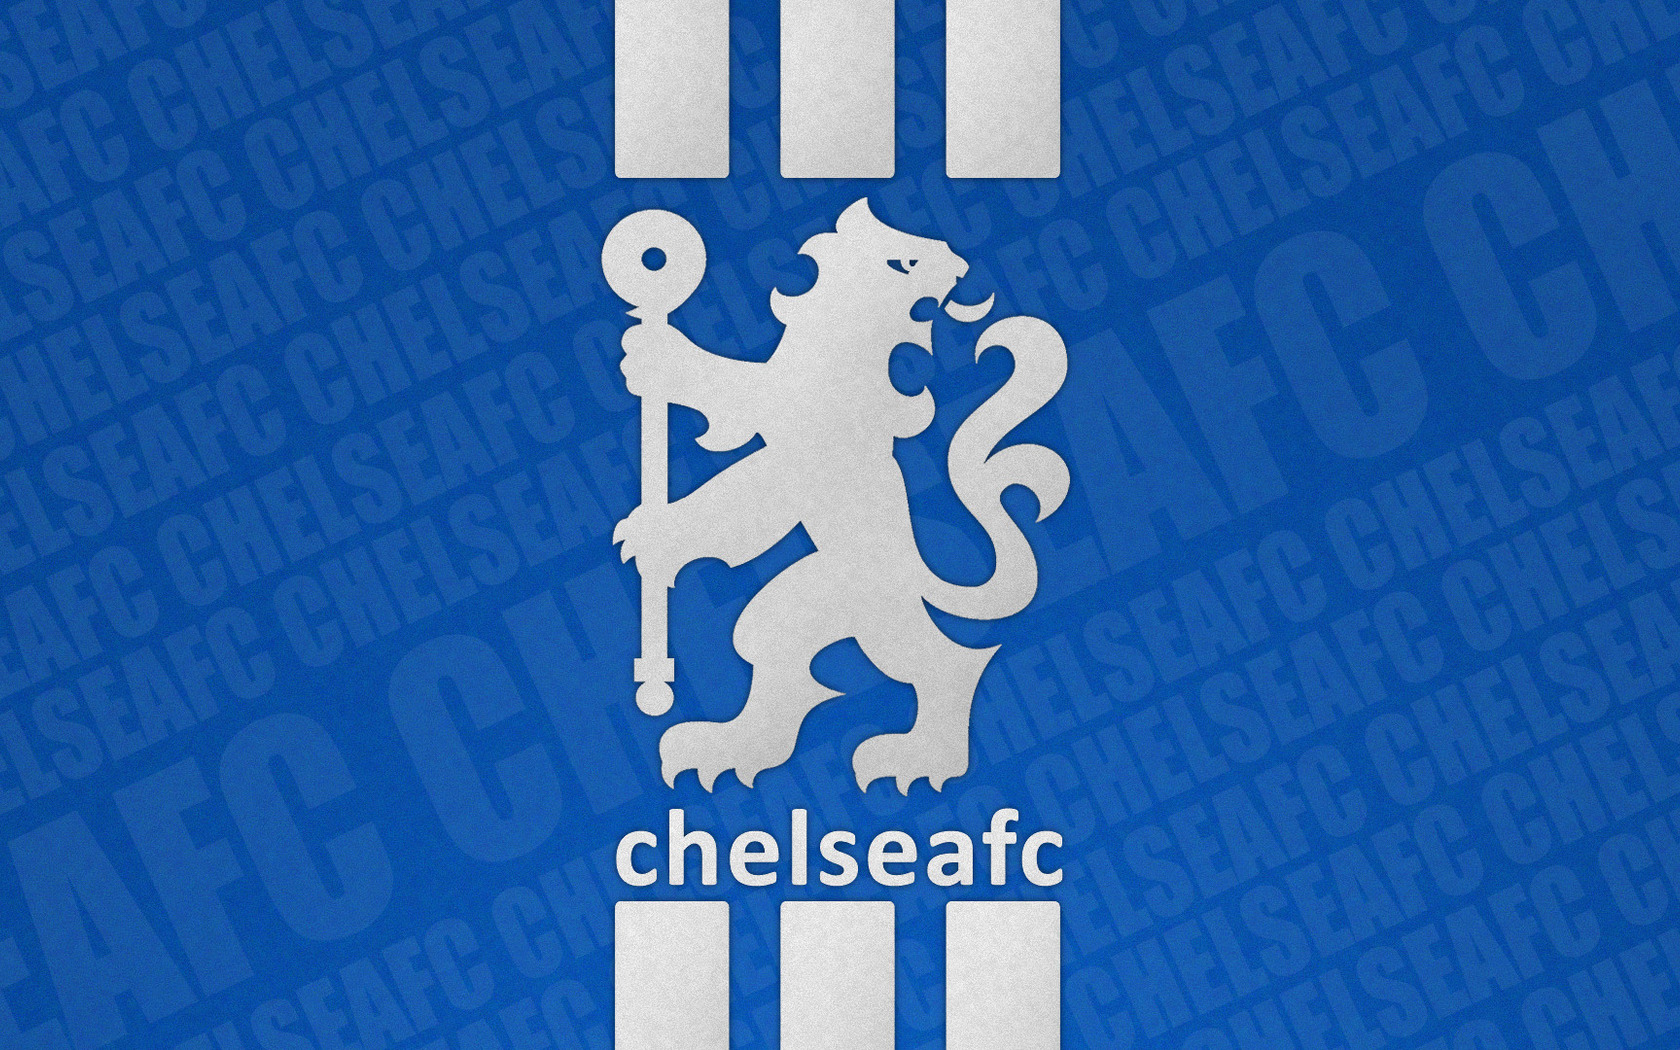 Chelsea Fc Blues Logo Wallpapers 1680x1050 706935